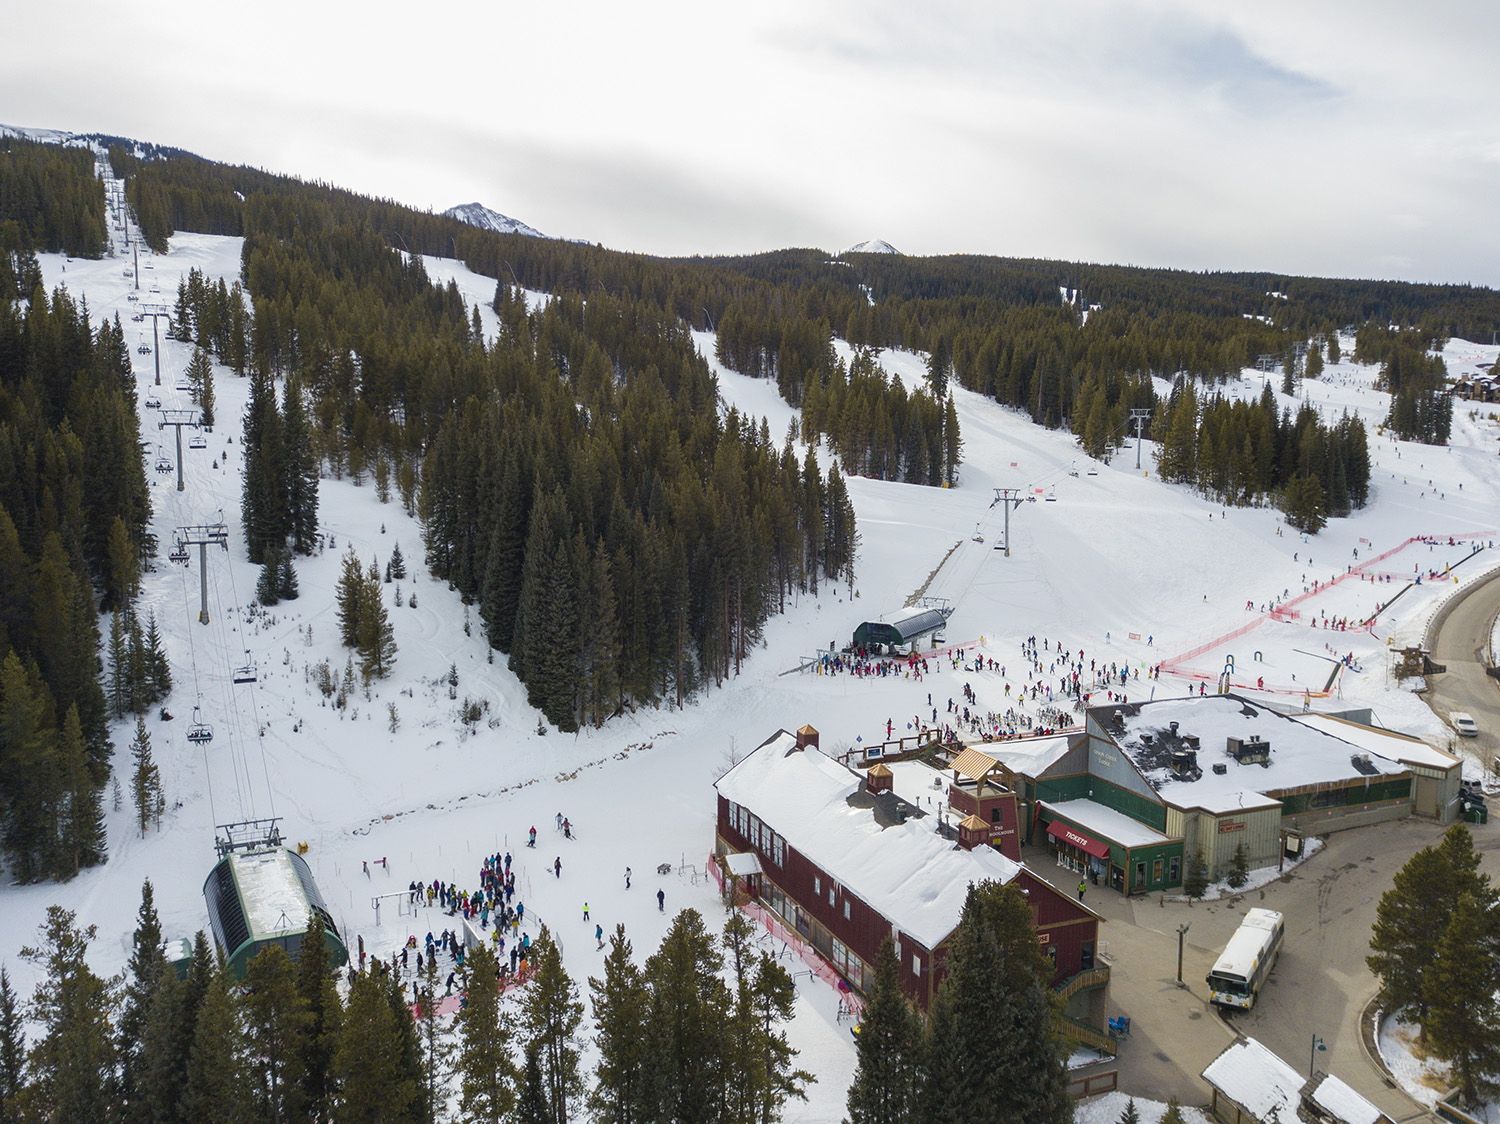 A birds eye view of Copper Mountain's West Village